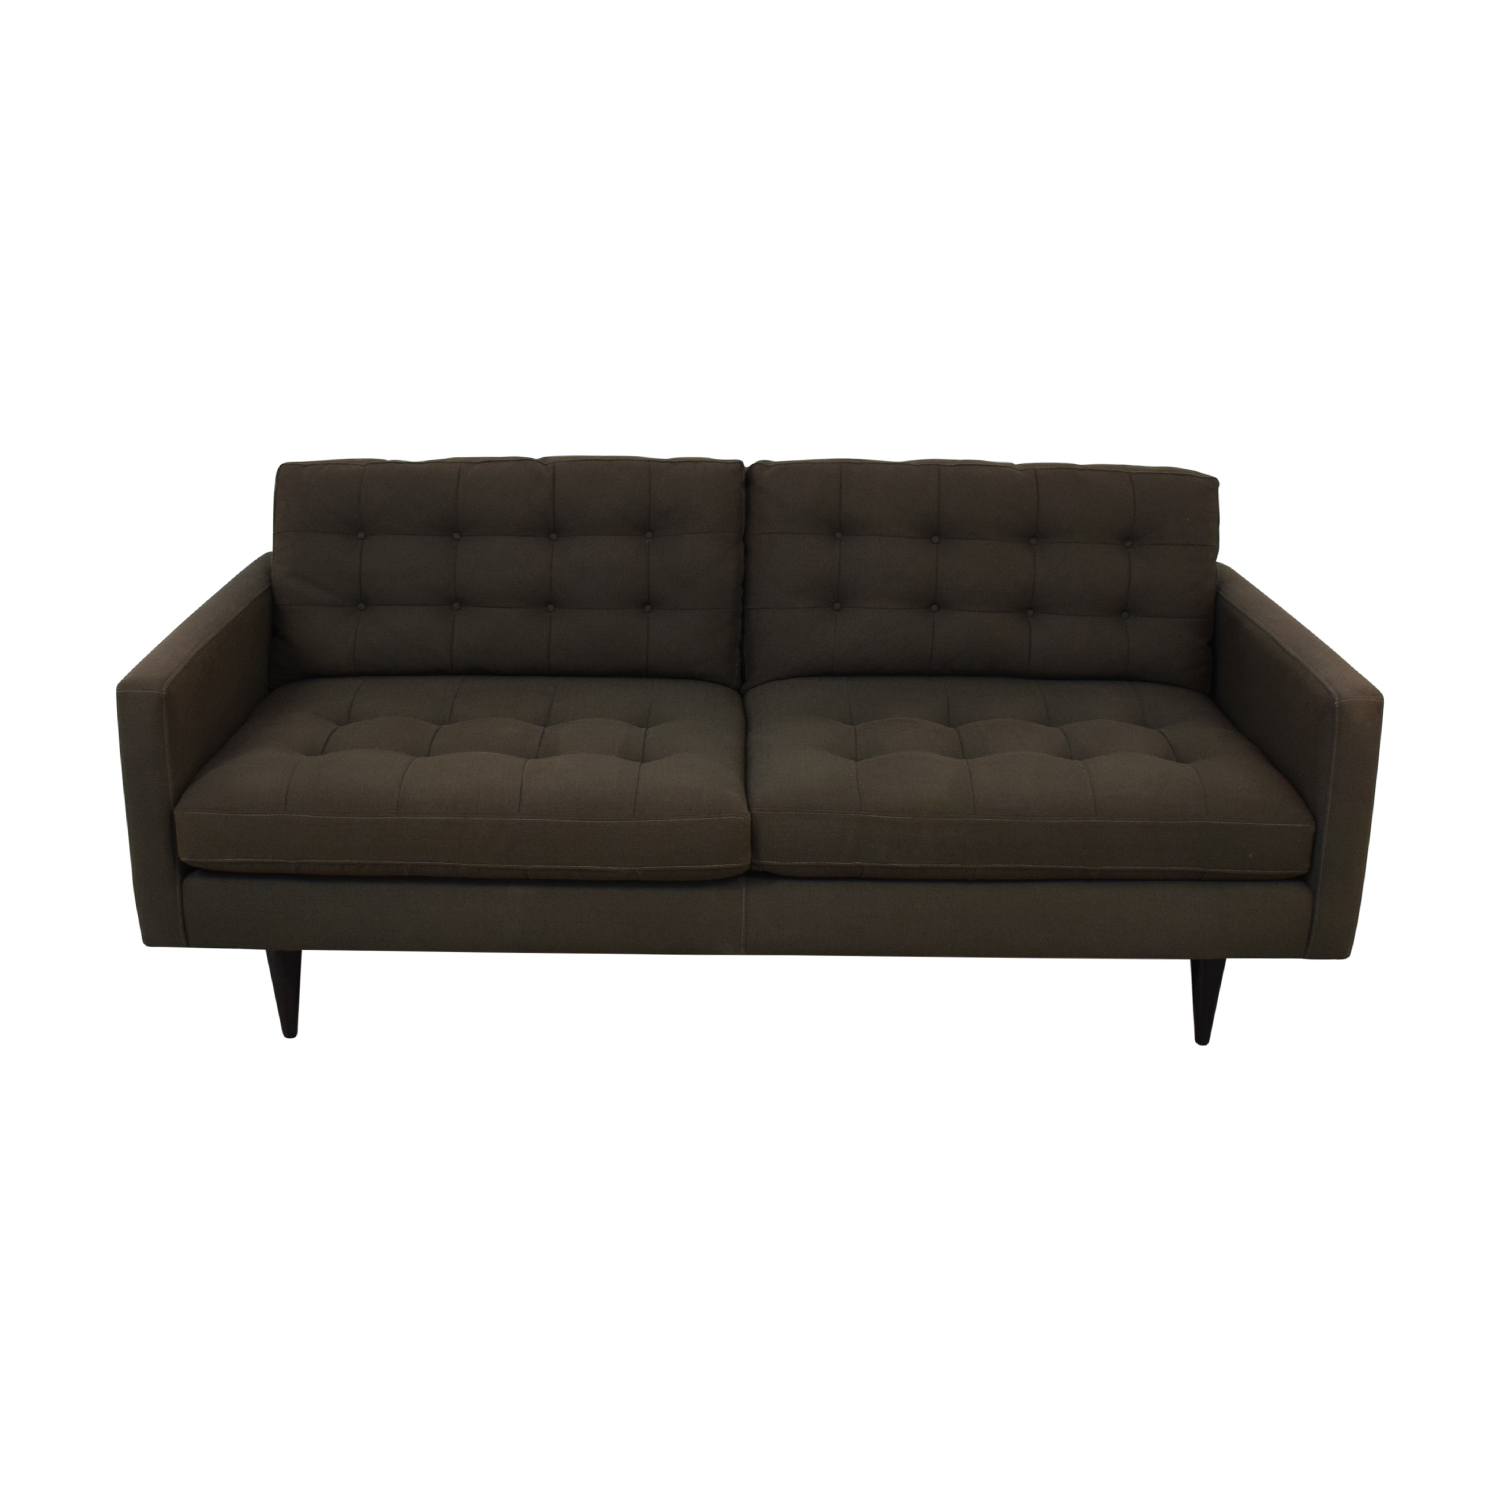 Sofa Online Purchase 61 Off Crate Barrel Crate Barrel Petrie Midcentury Sofa Sofas